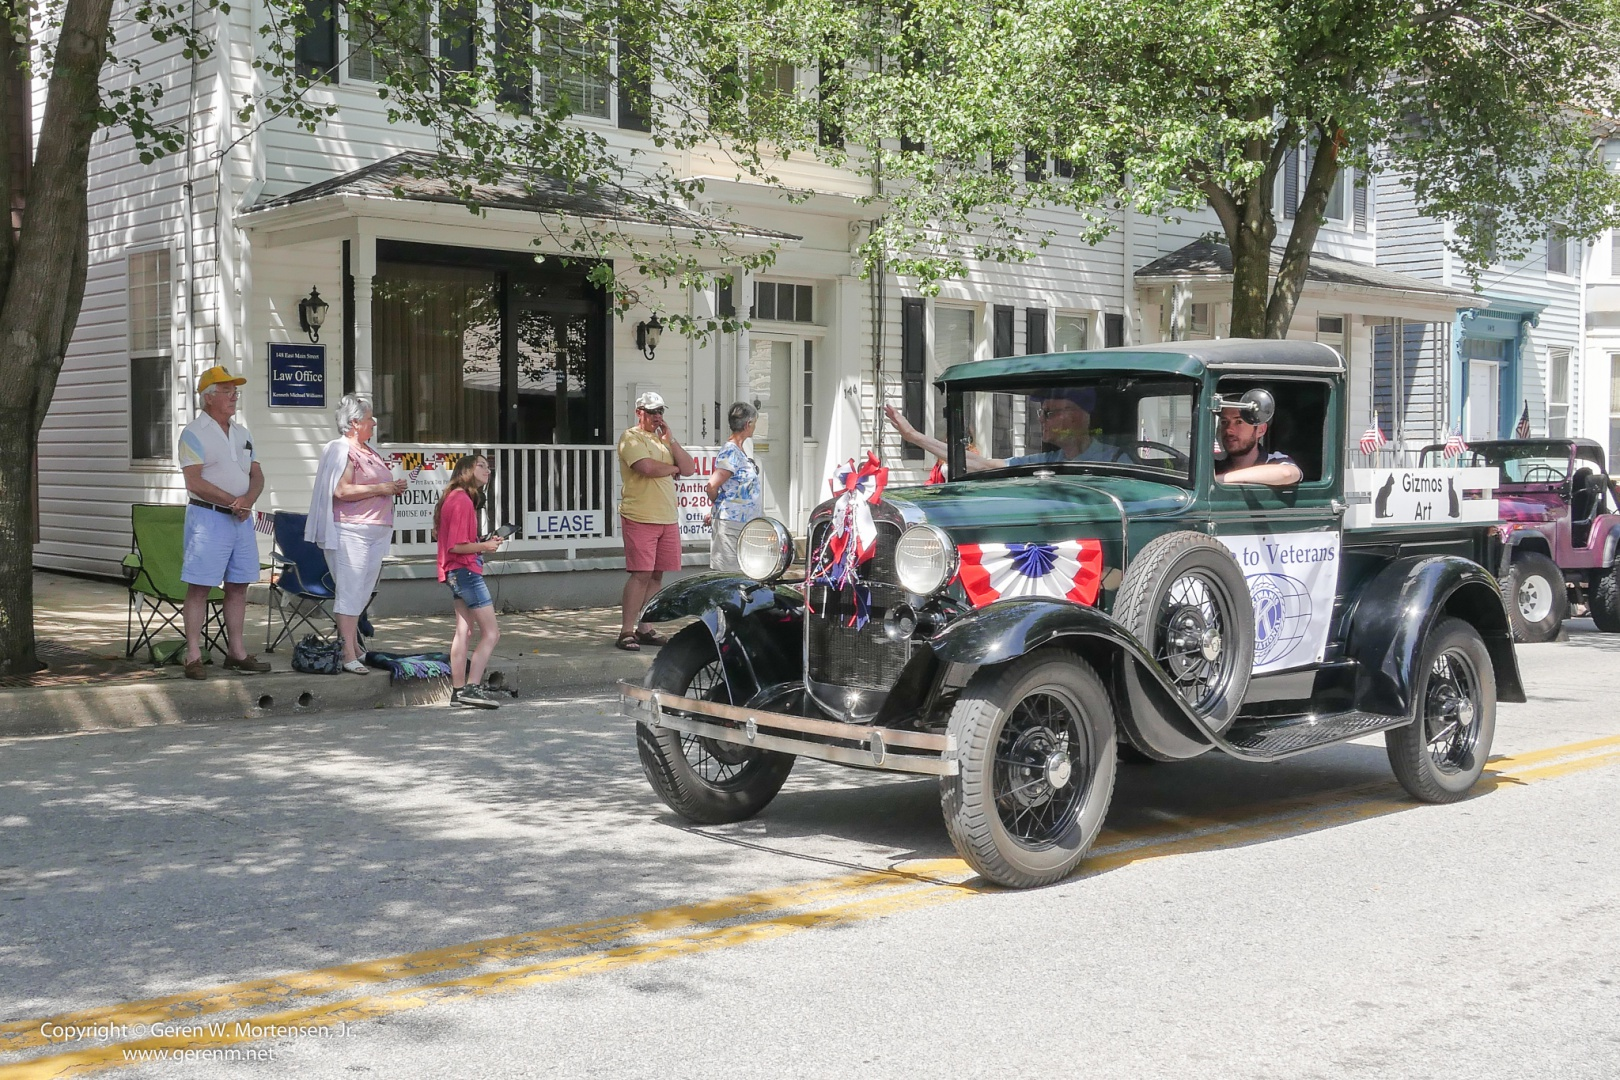 Memorial-Day-Parade_May-26-2014_06_PANA.jpg